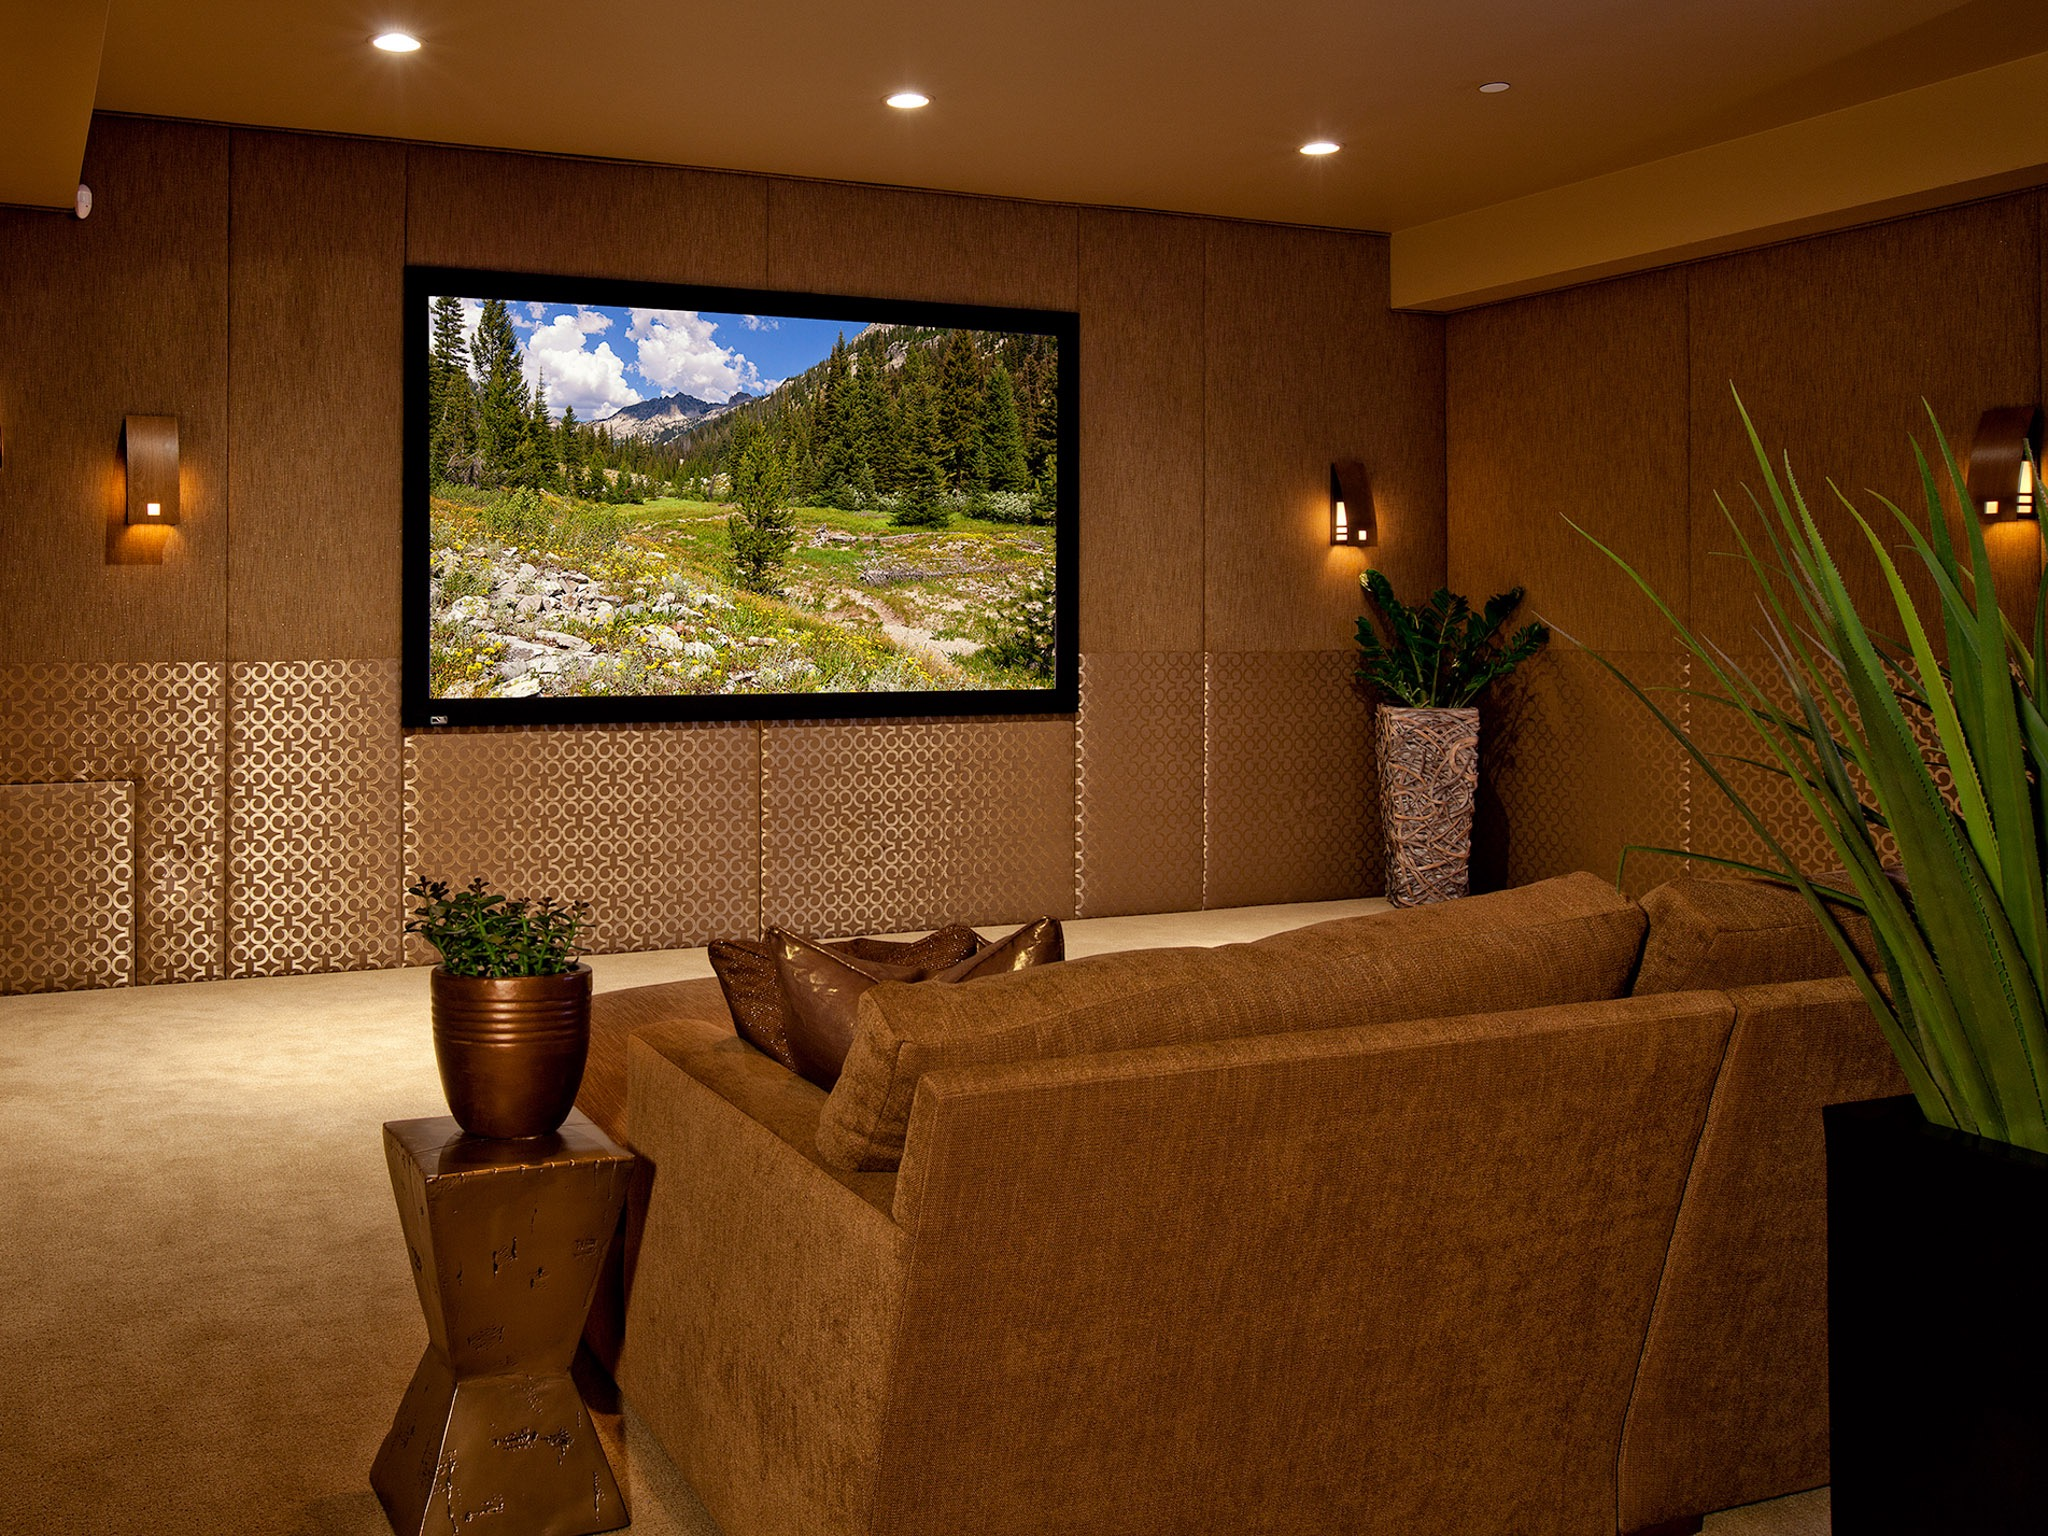 Modern Minimalist Home Theater Entertainment Room (Image 12 of 15)